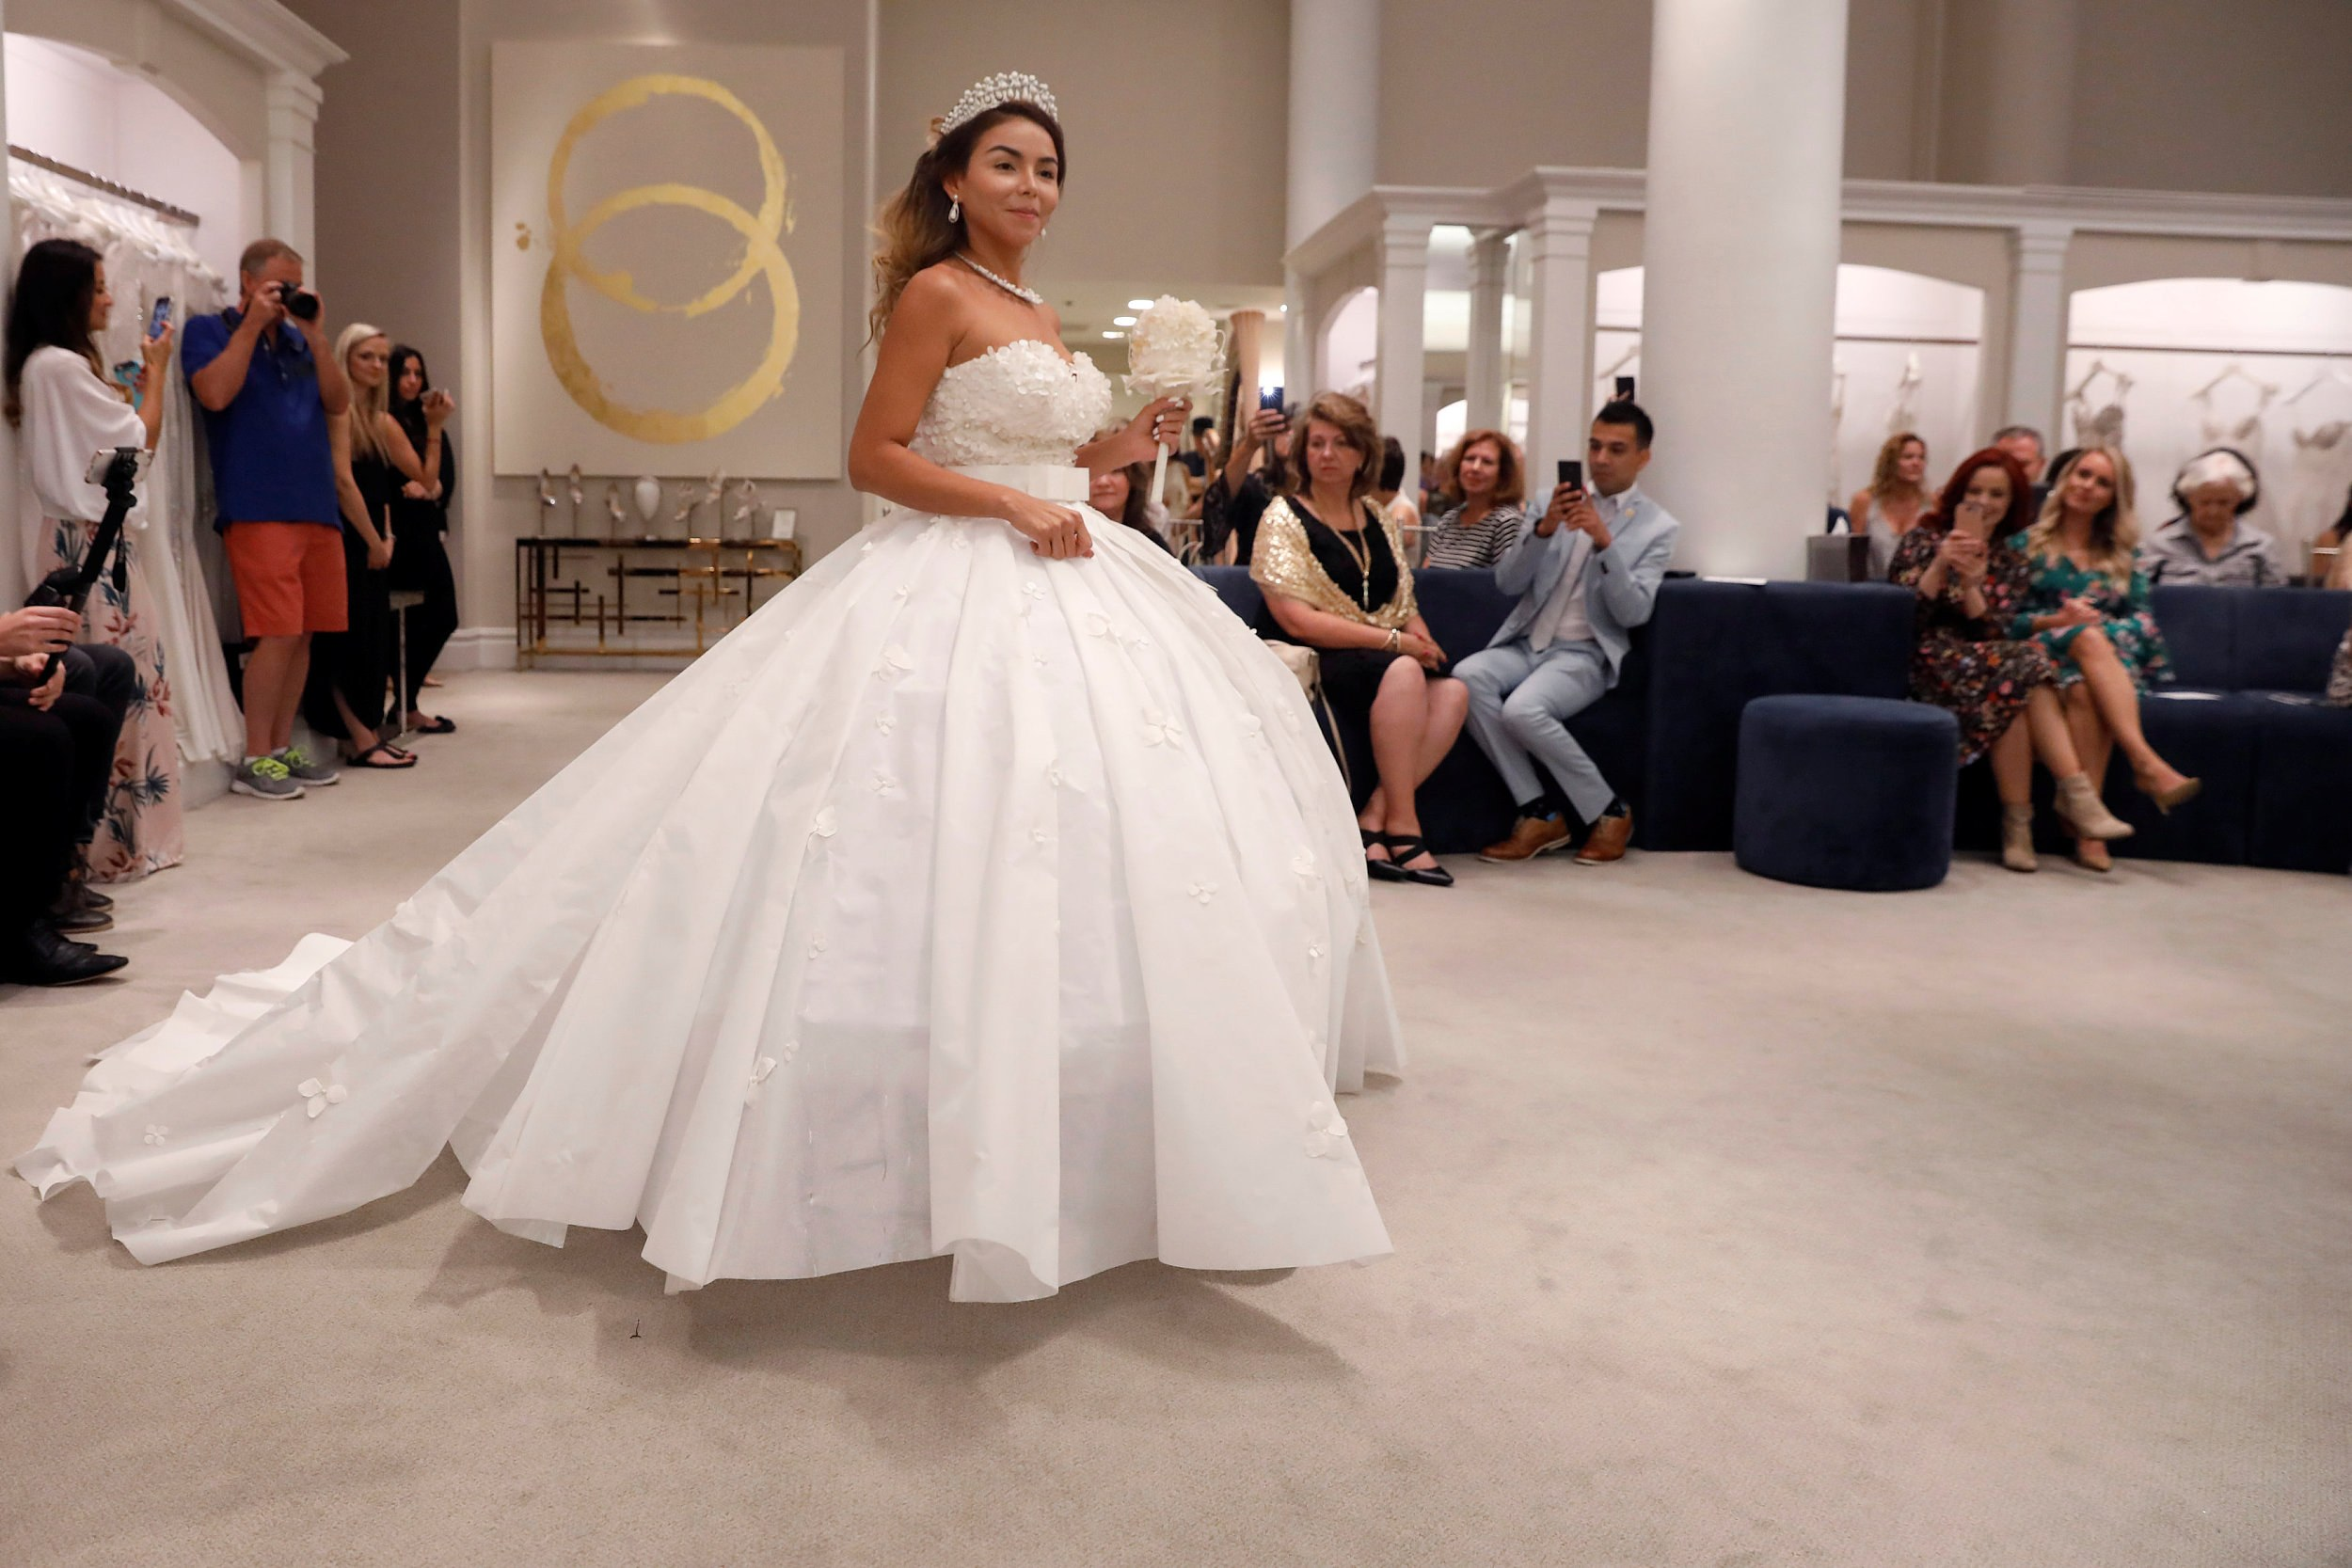 Designers roll out wedding dresses made of toilet paper in NY